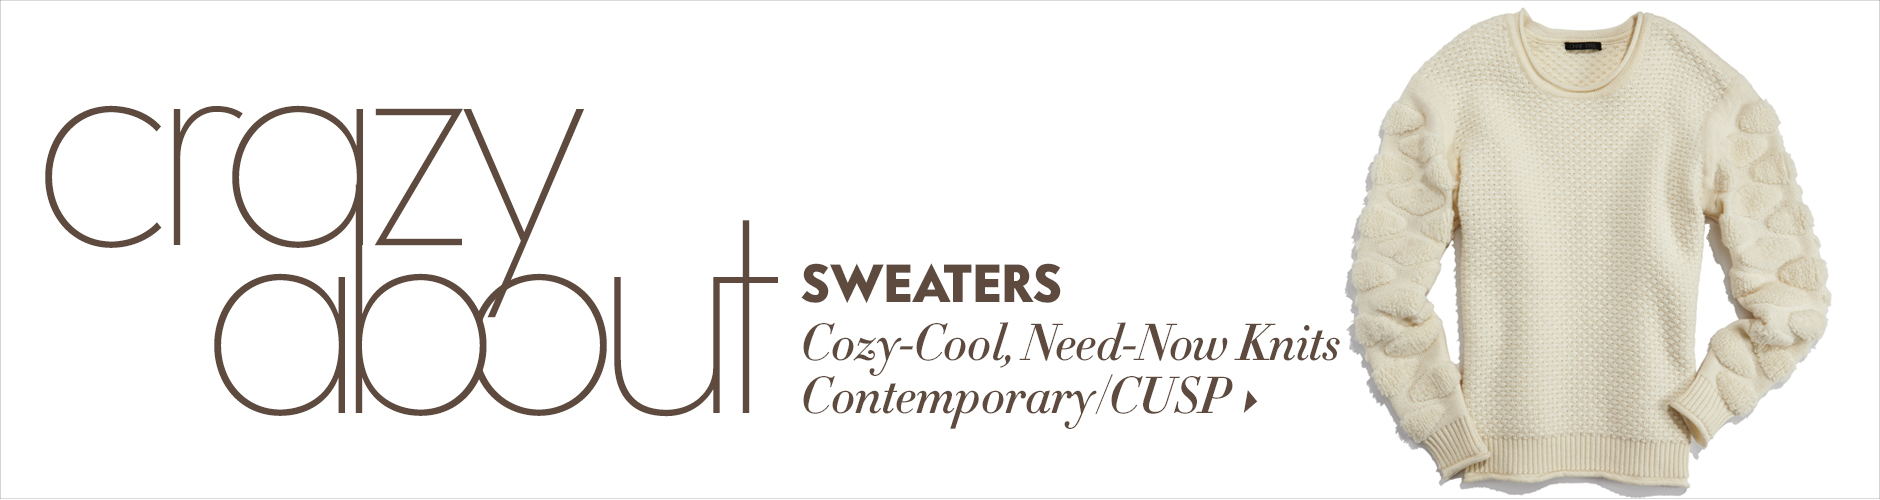 Crazy about: Sweaters